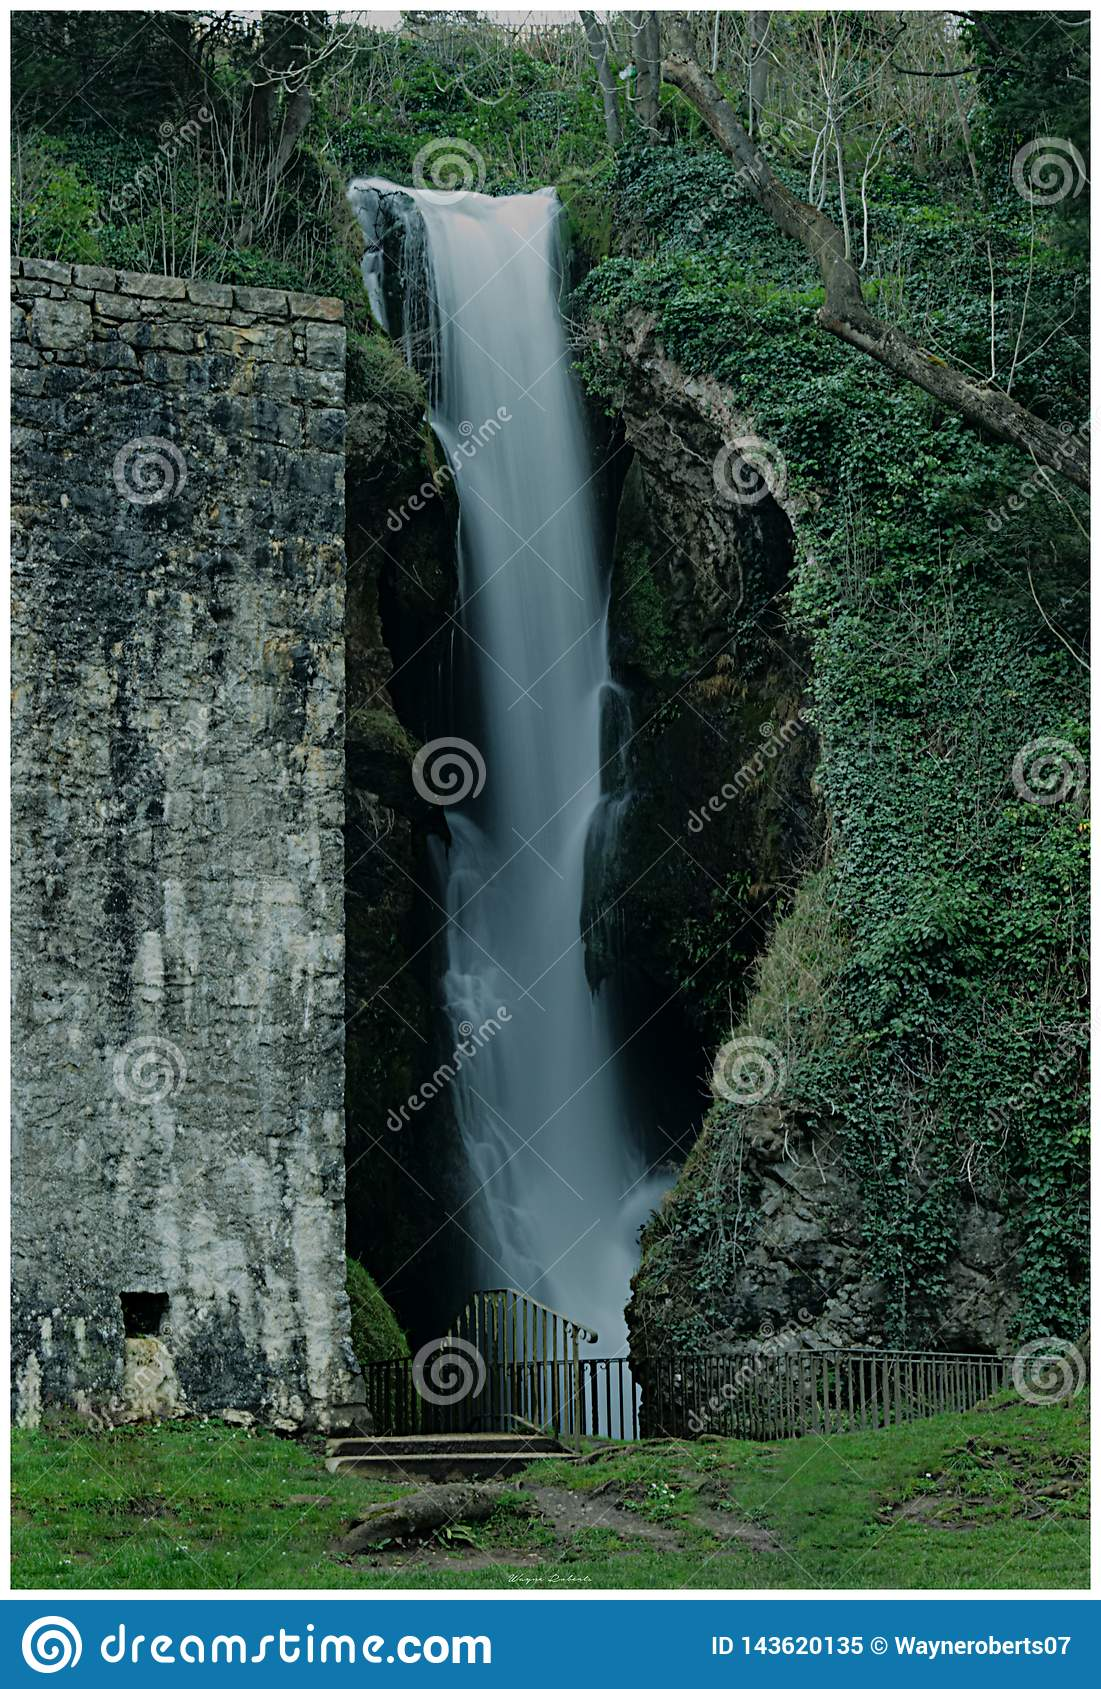 Dyserthwaterval